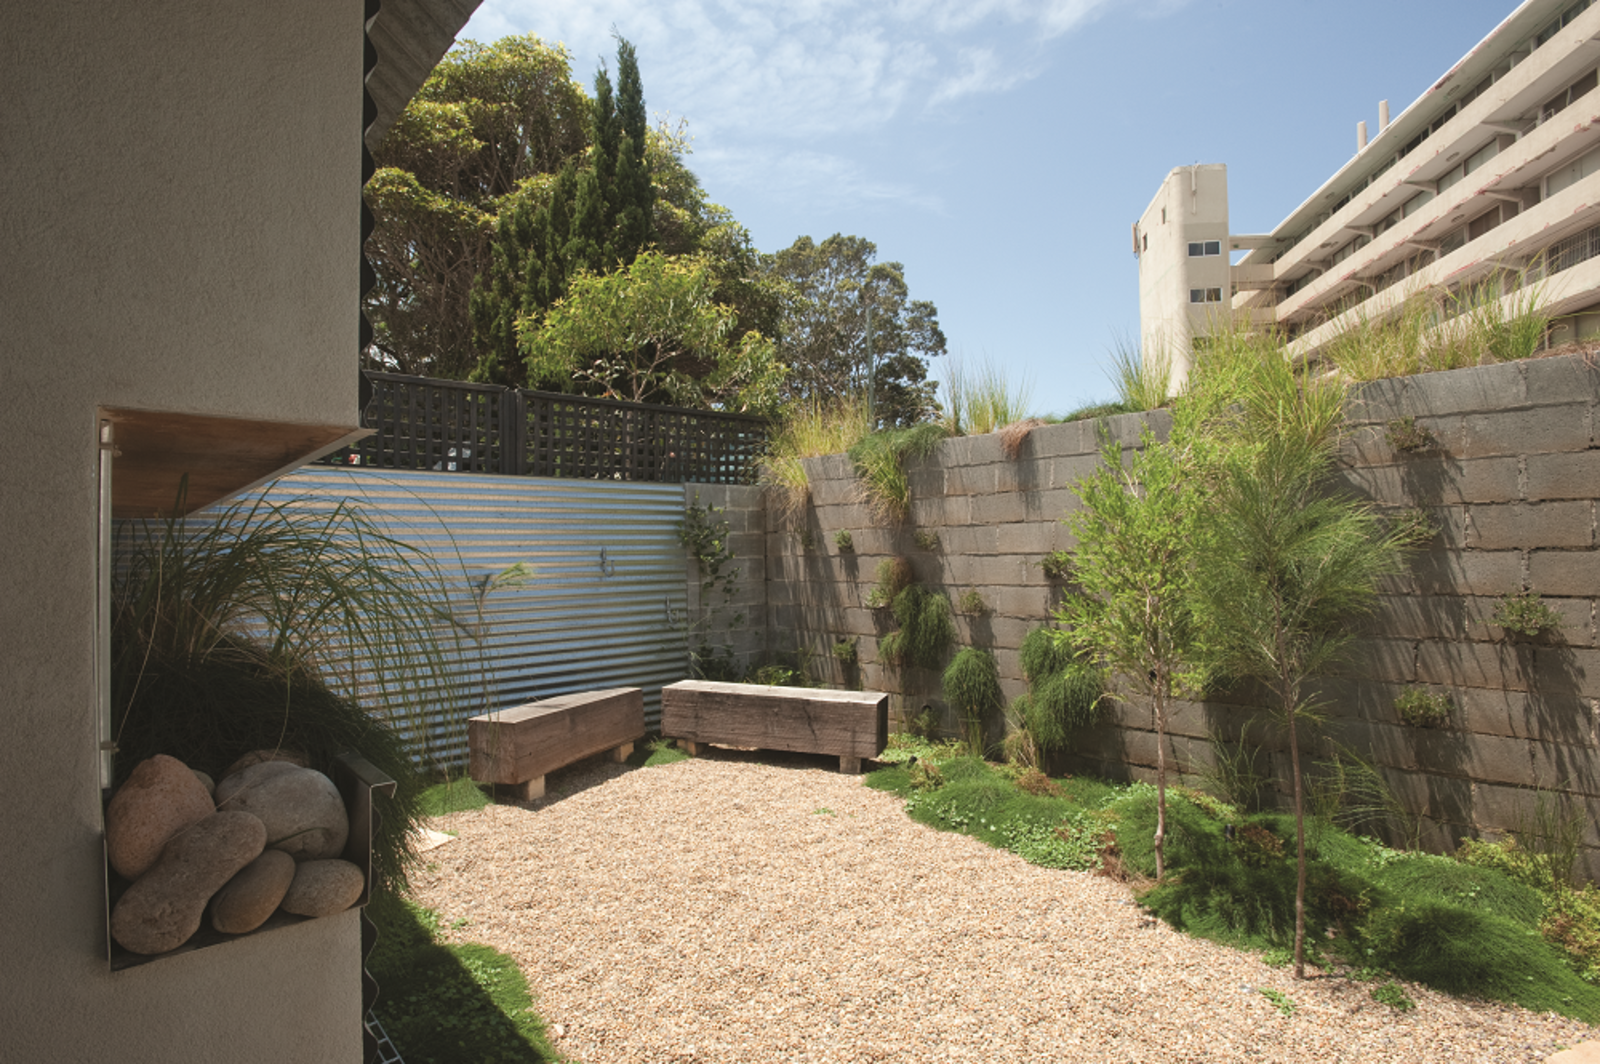 The back wall of the garden, made from stacked concrete blocks, was initially meant to be a row of vertical planting boxes.  Photo 9 of 10 in Compact Australian Home Clad in Steel and Concrete